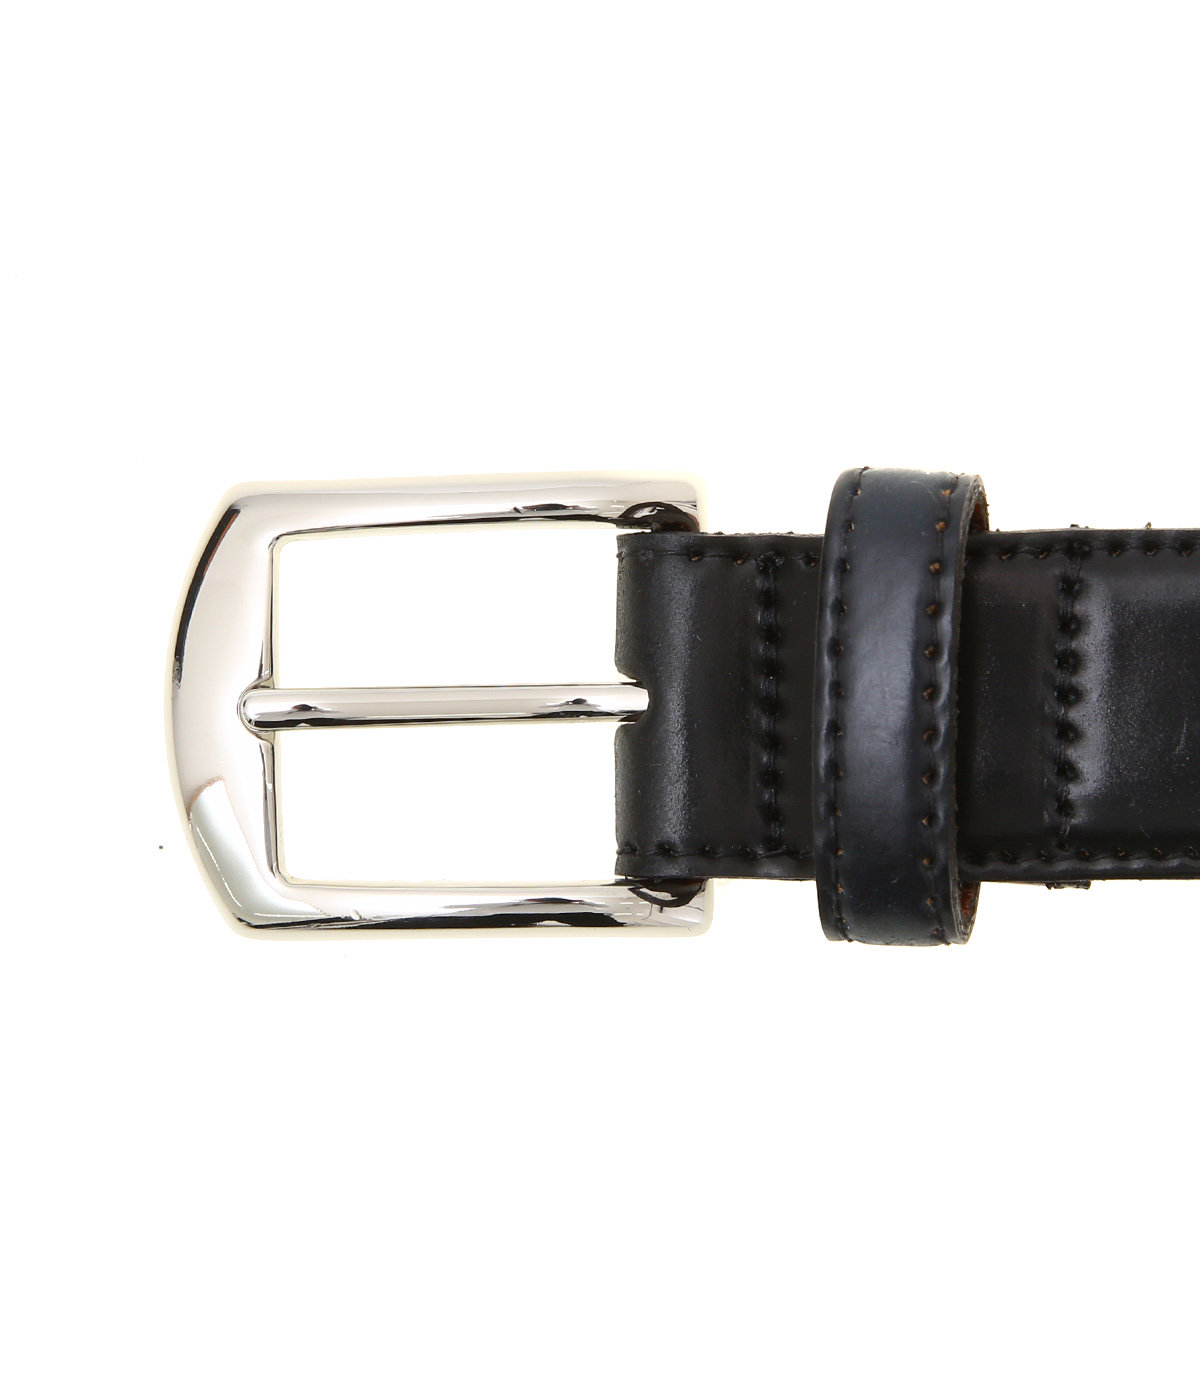 32mm DRESS BELT